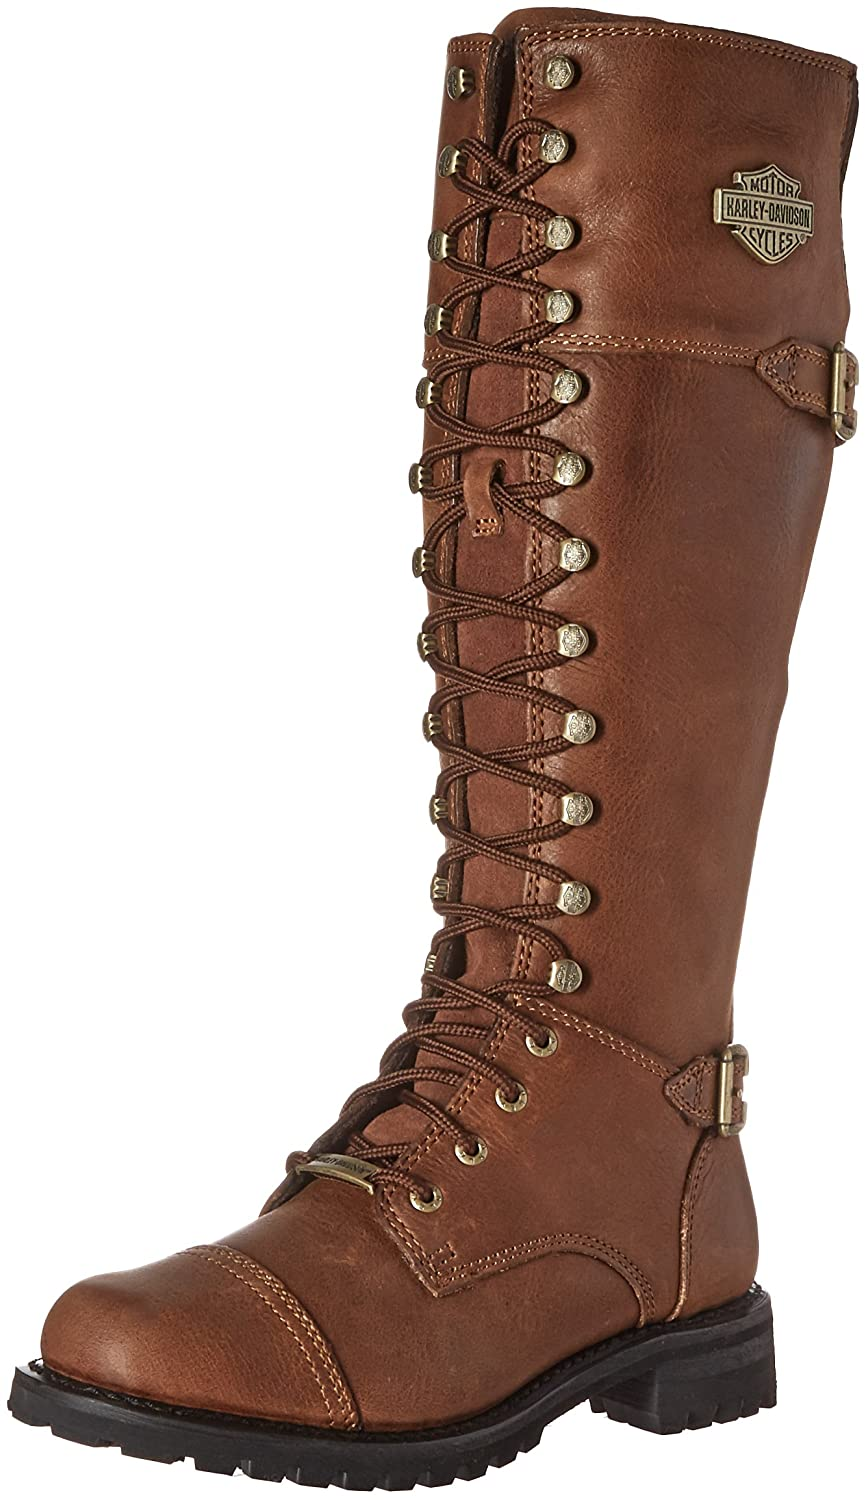 Harley-Davidson Women's Beechwood Work Boot B01B41XEYC 8 B(M) US|Brown